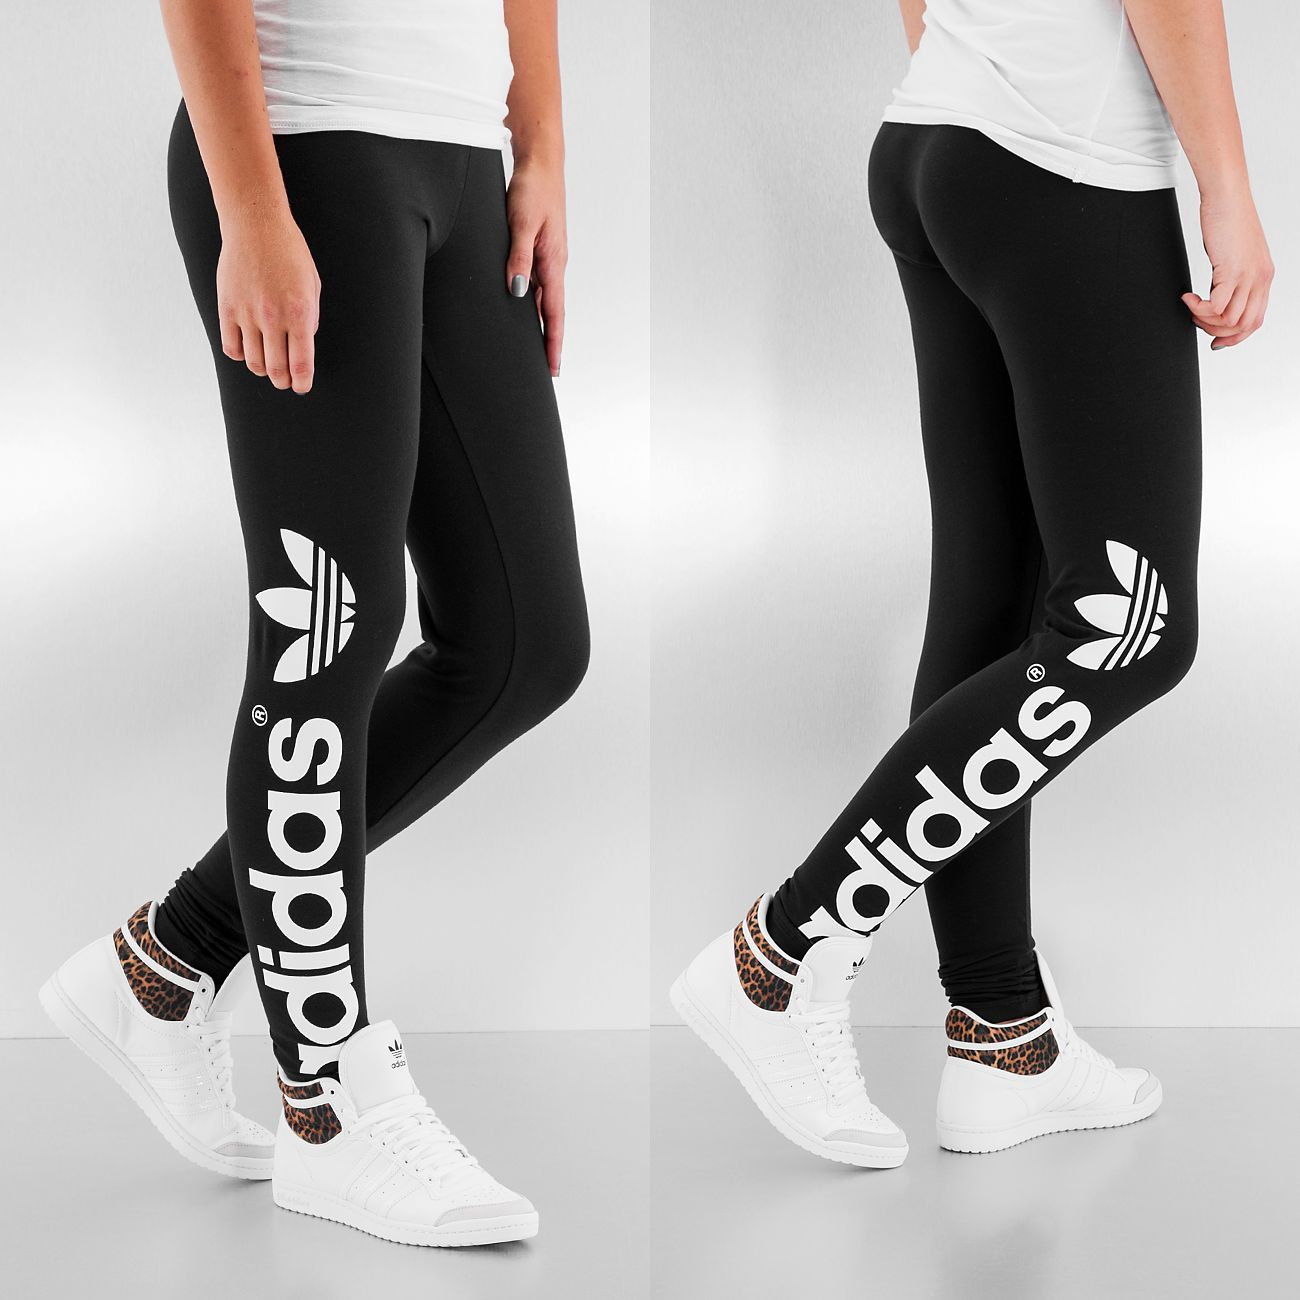 adidas hose legging trefoil in schwarz adidas pinterest. Black Bedroom Furniture Sets. Home Design Ideas